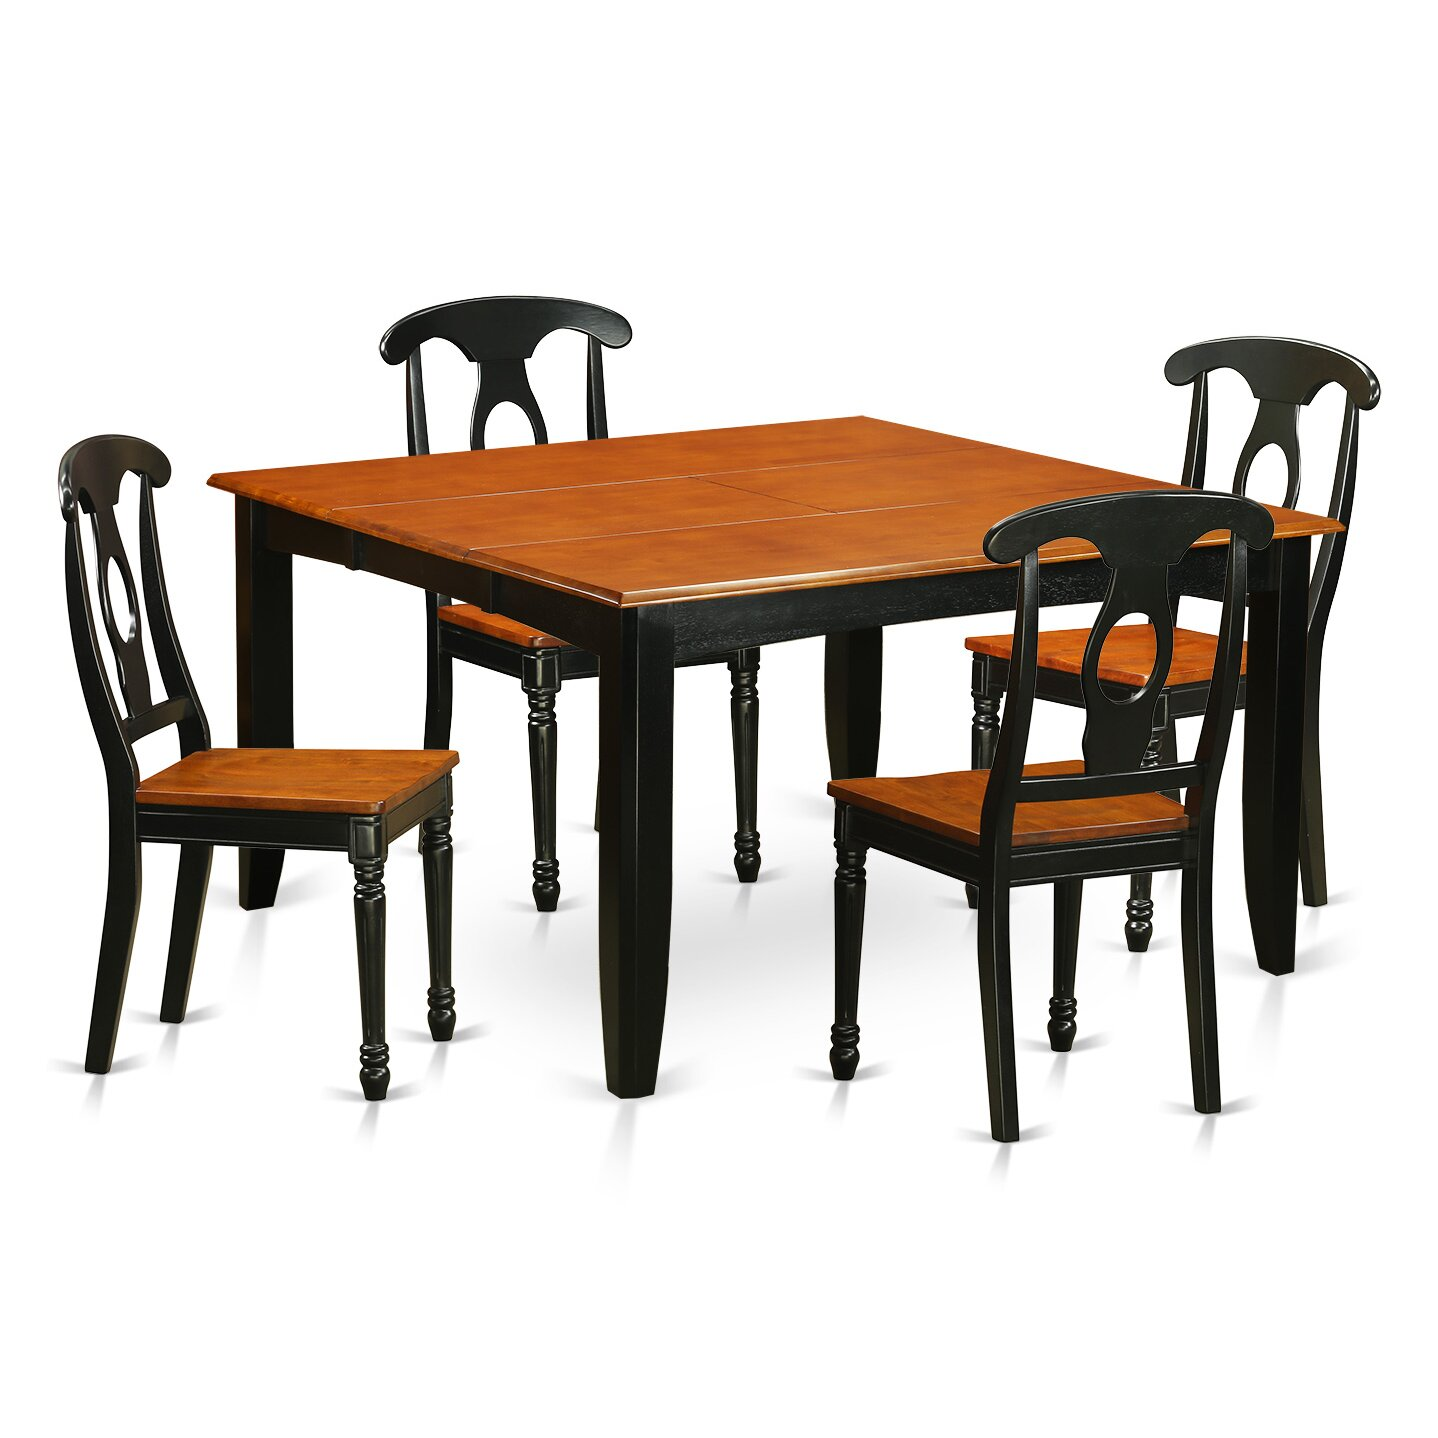 East west parfait 5 piece dining set reviews wayfair for 4 dining room table